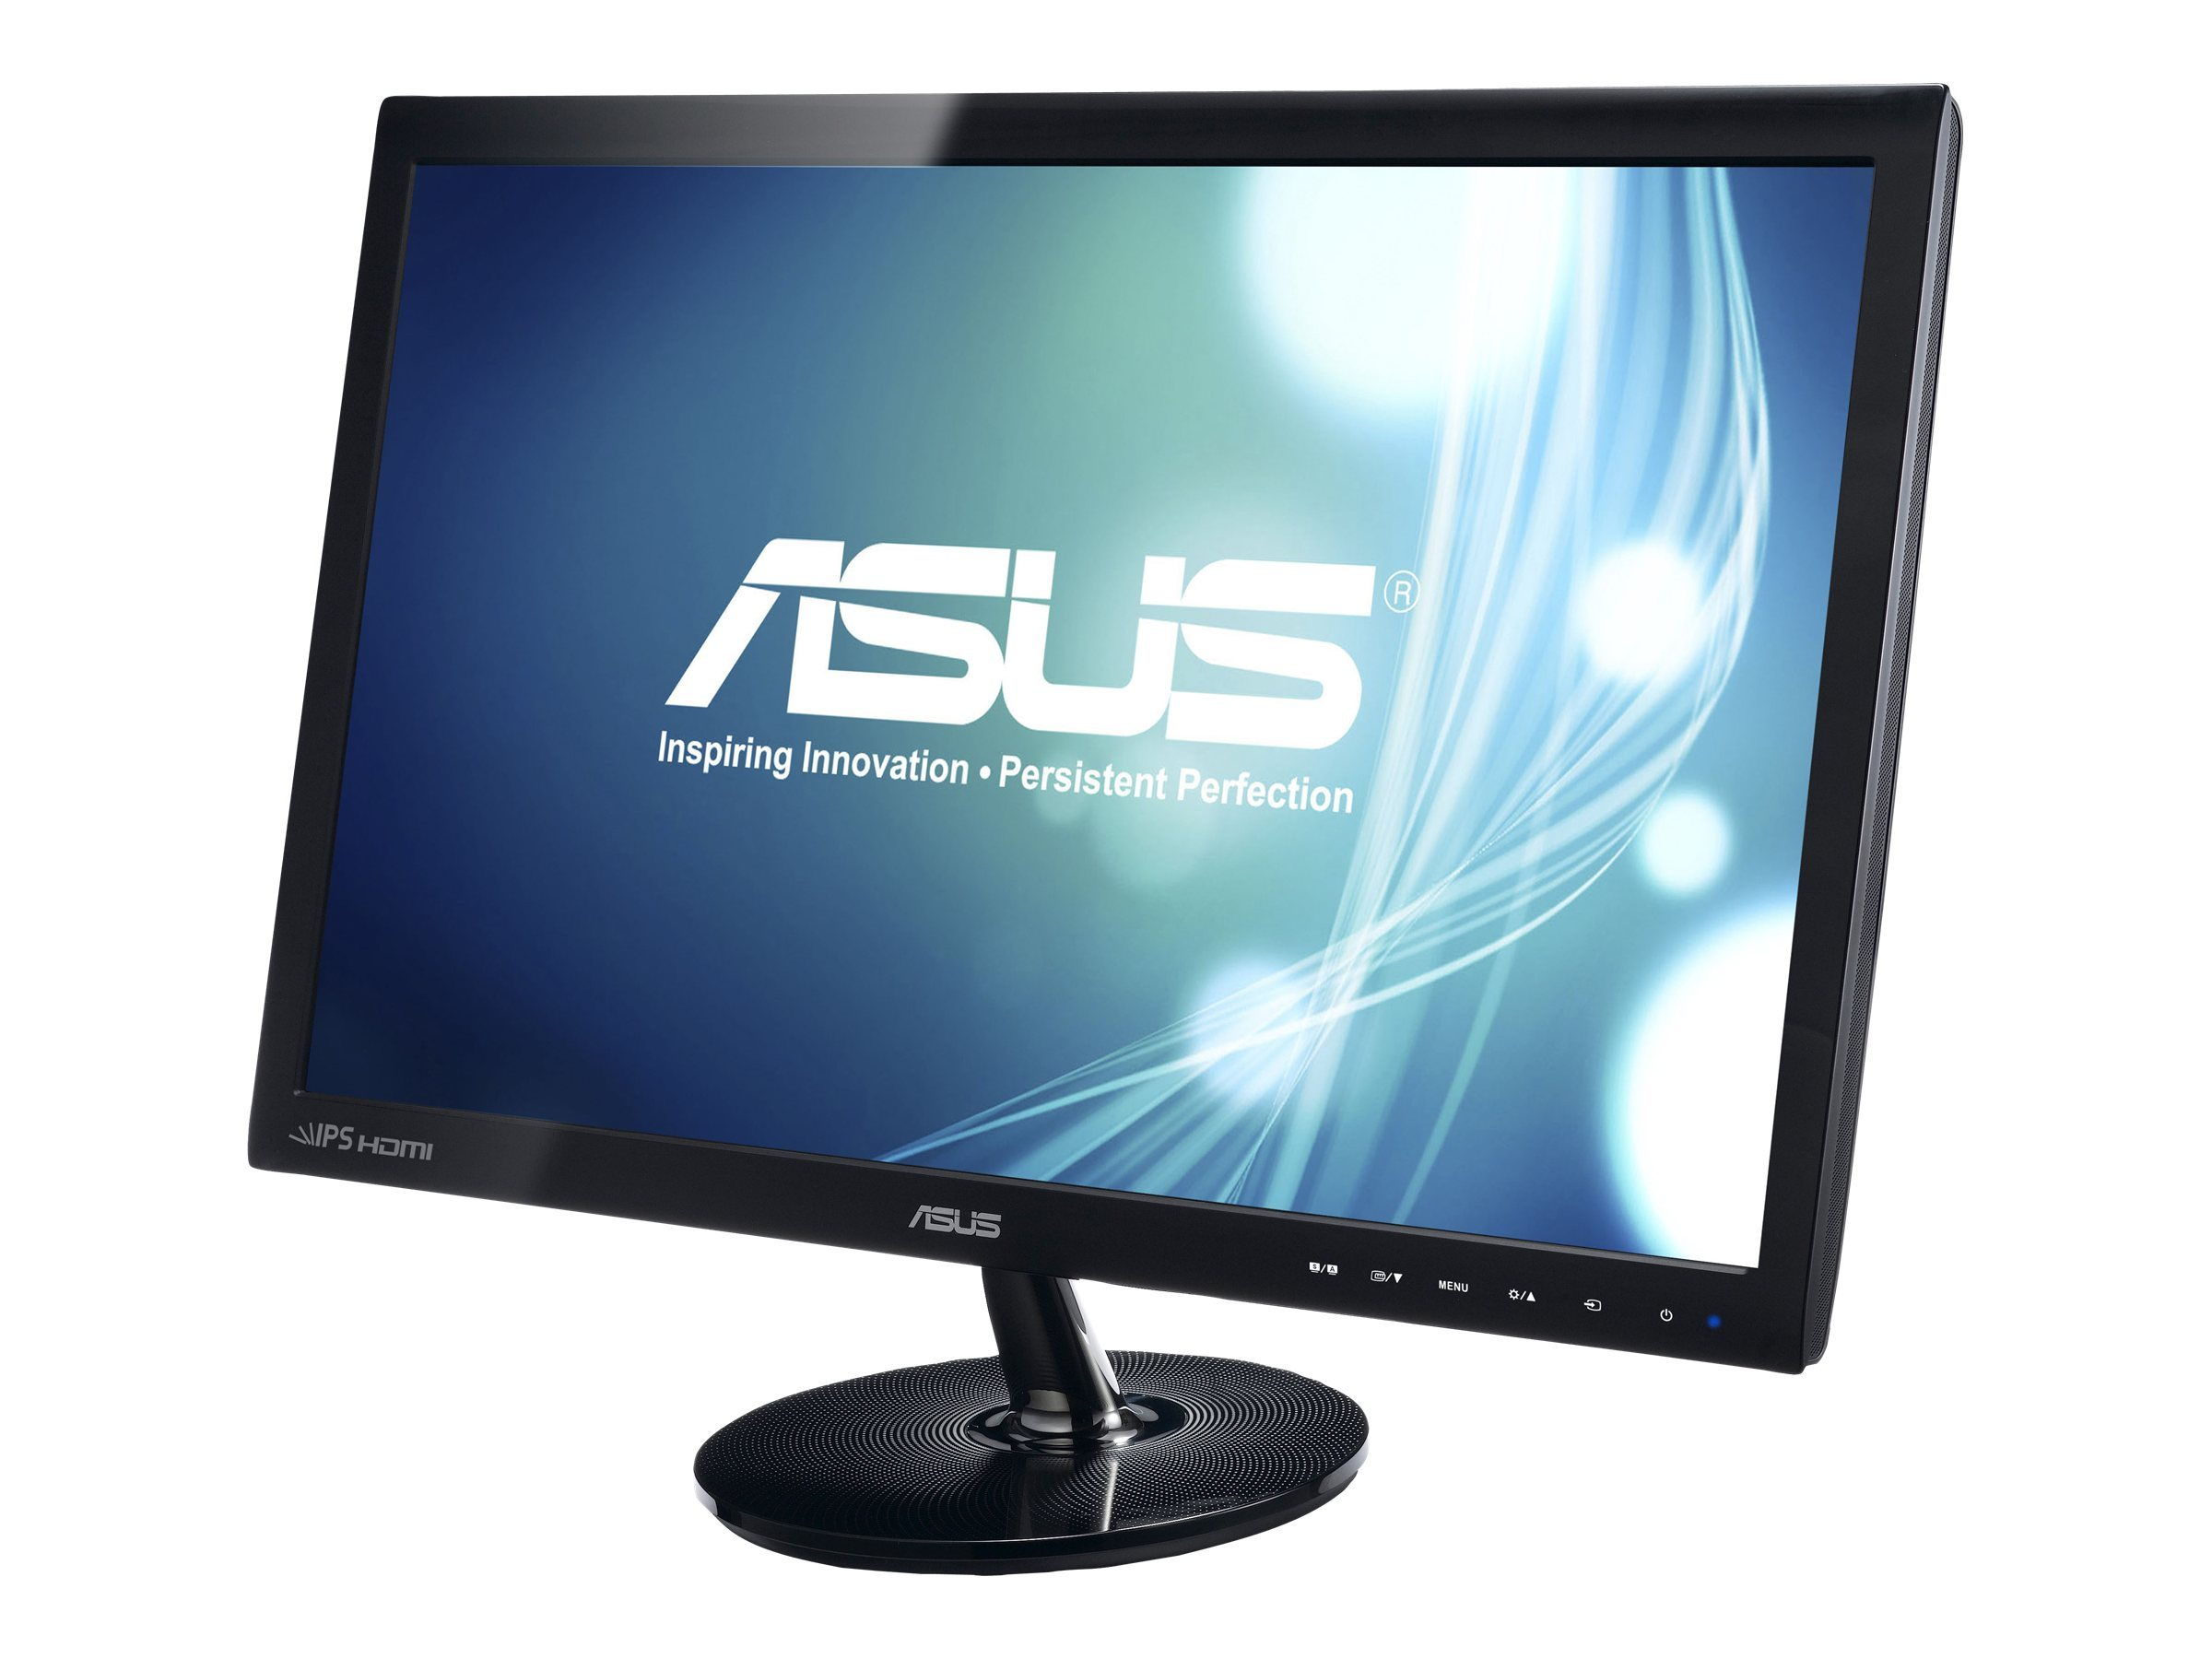 Asus 23 VS239H-P LED-LCD Full HD Monitor, Black, VS239H-P